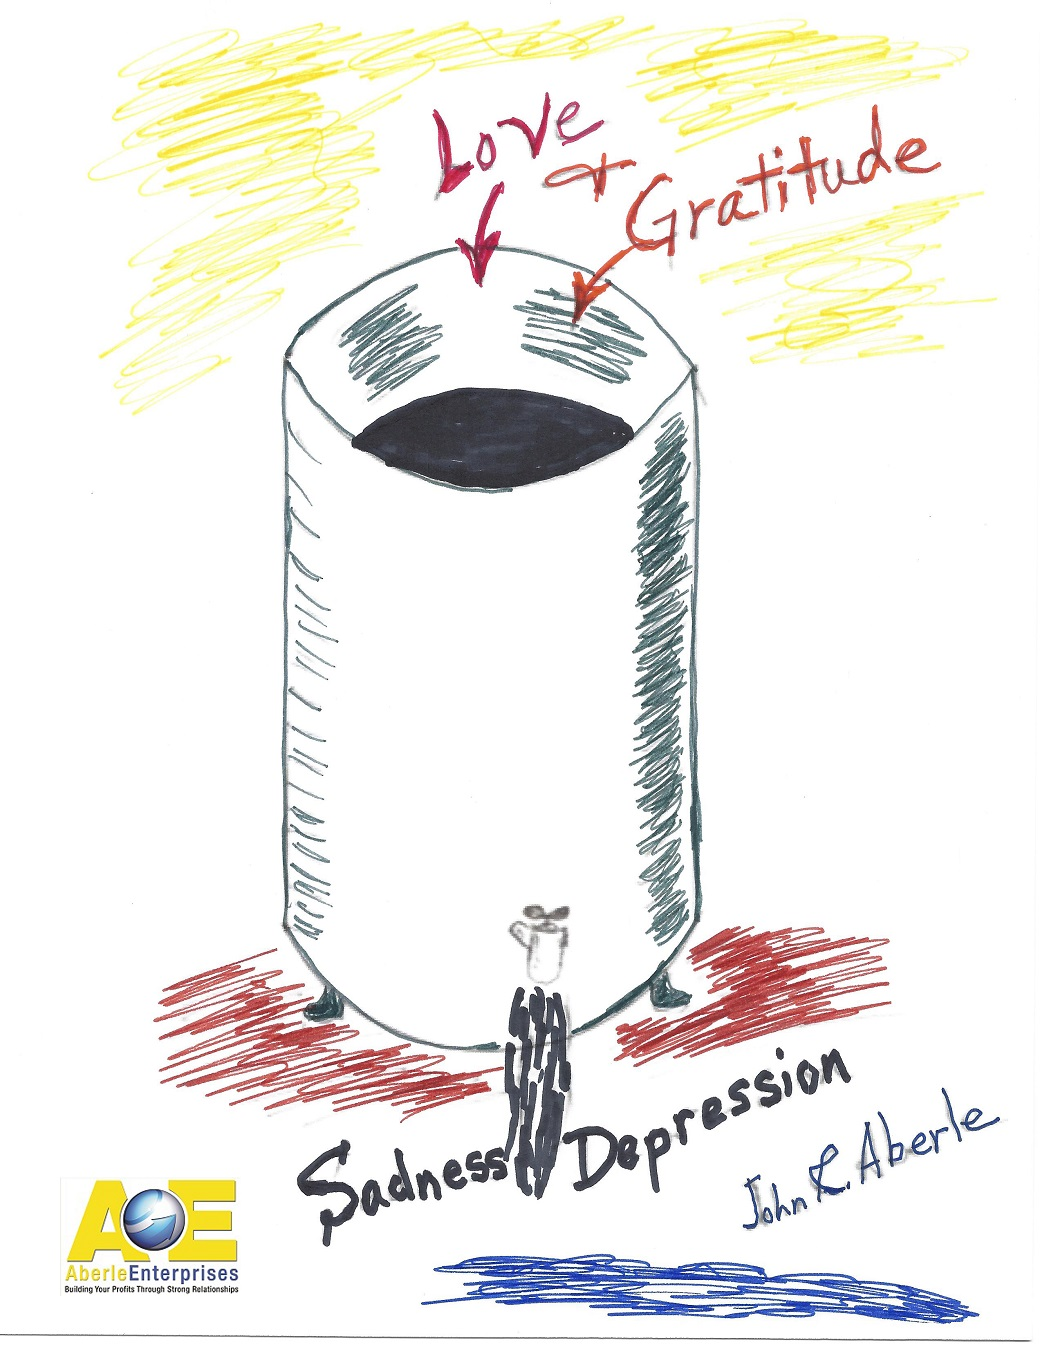 John R. Aberle's drawing of draining a vat of depression and sadness & refilling with love and gratitude